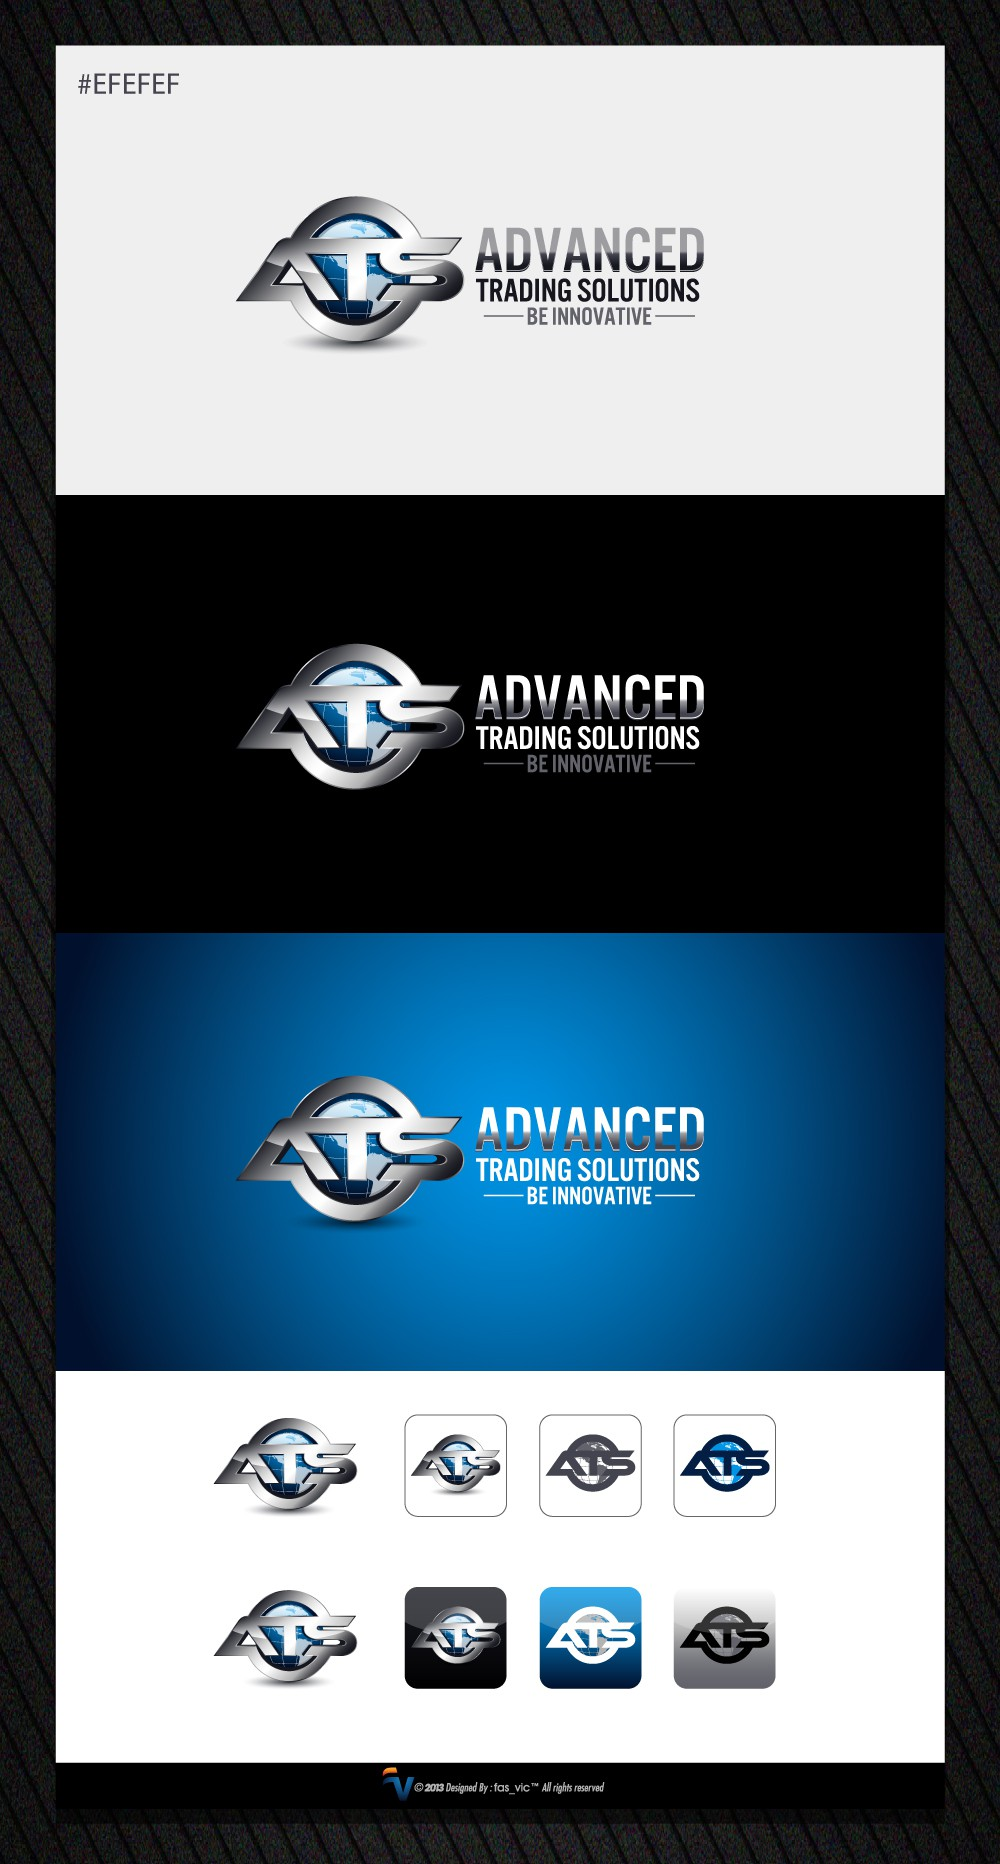 Advanced Trading Solutions needs a new logo